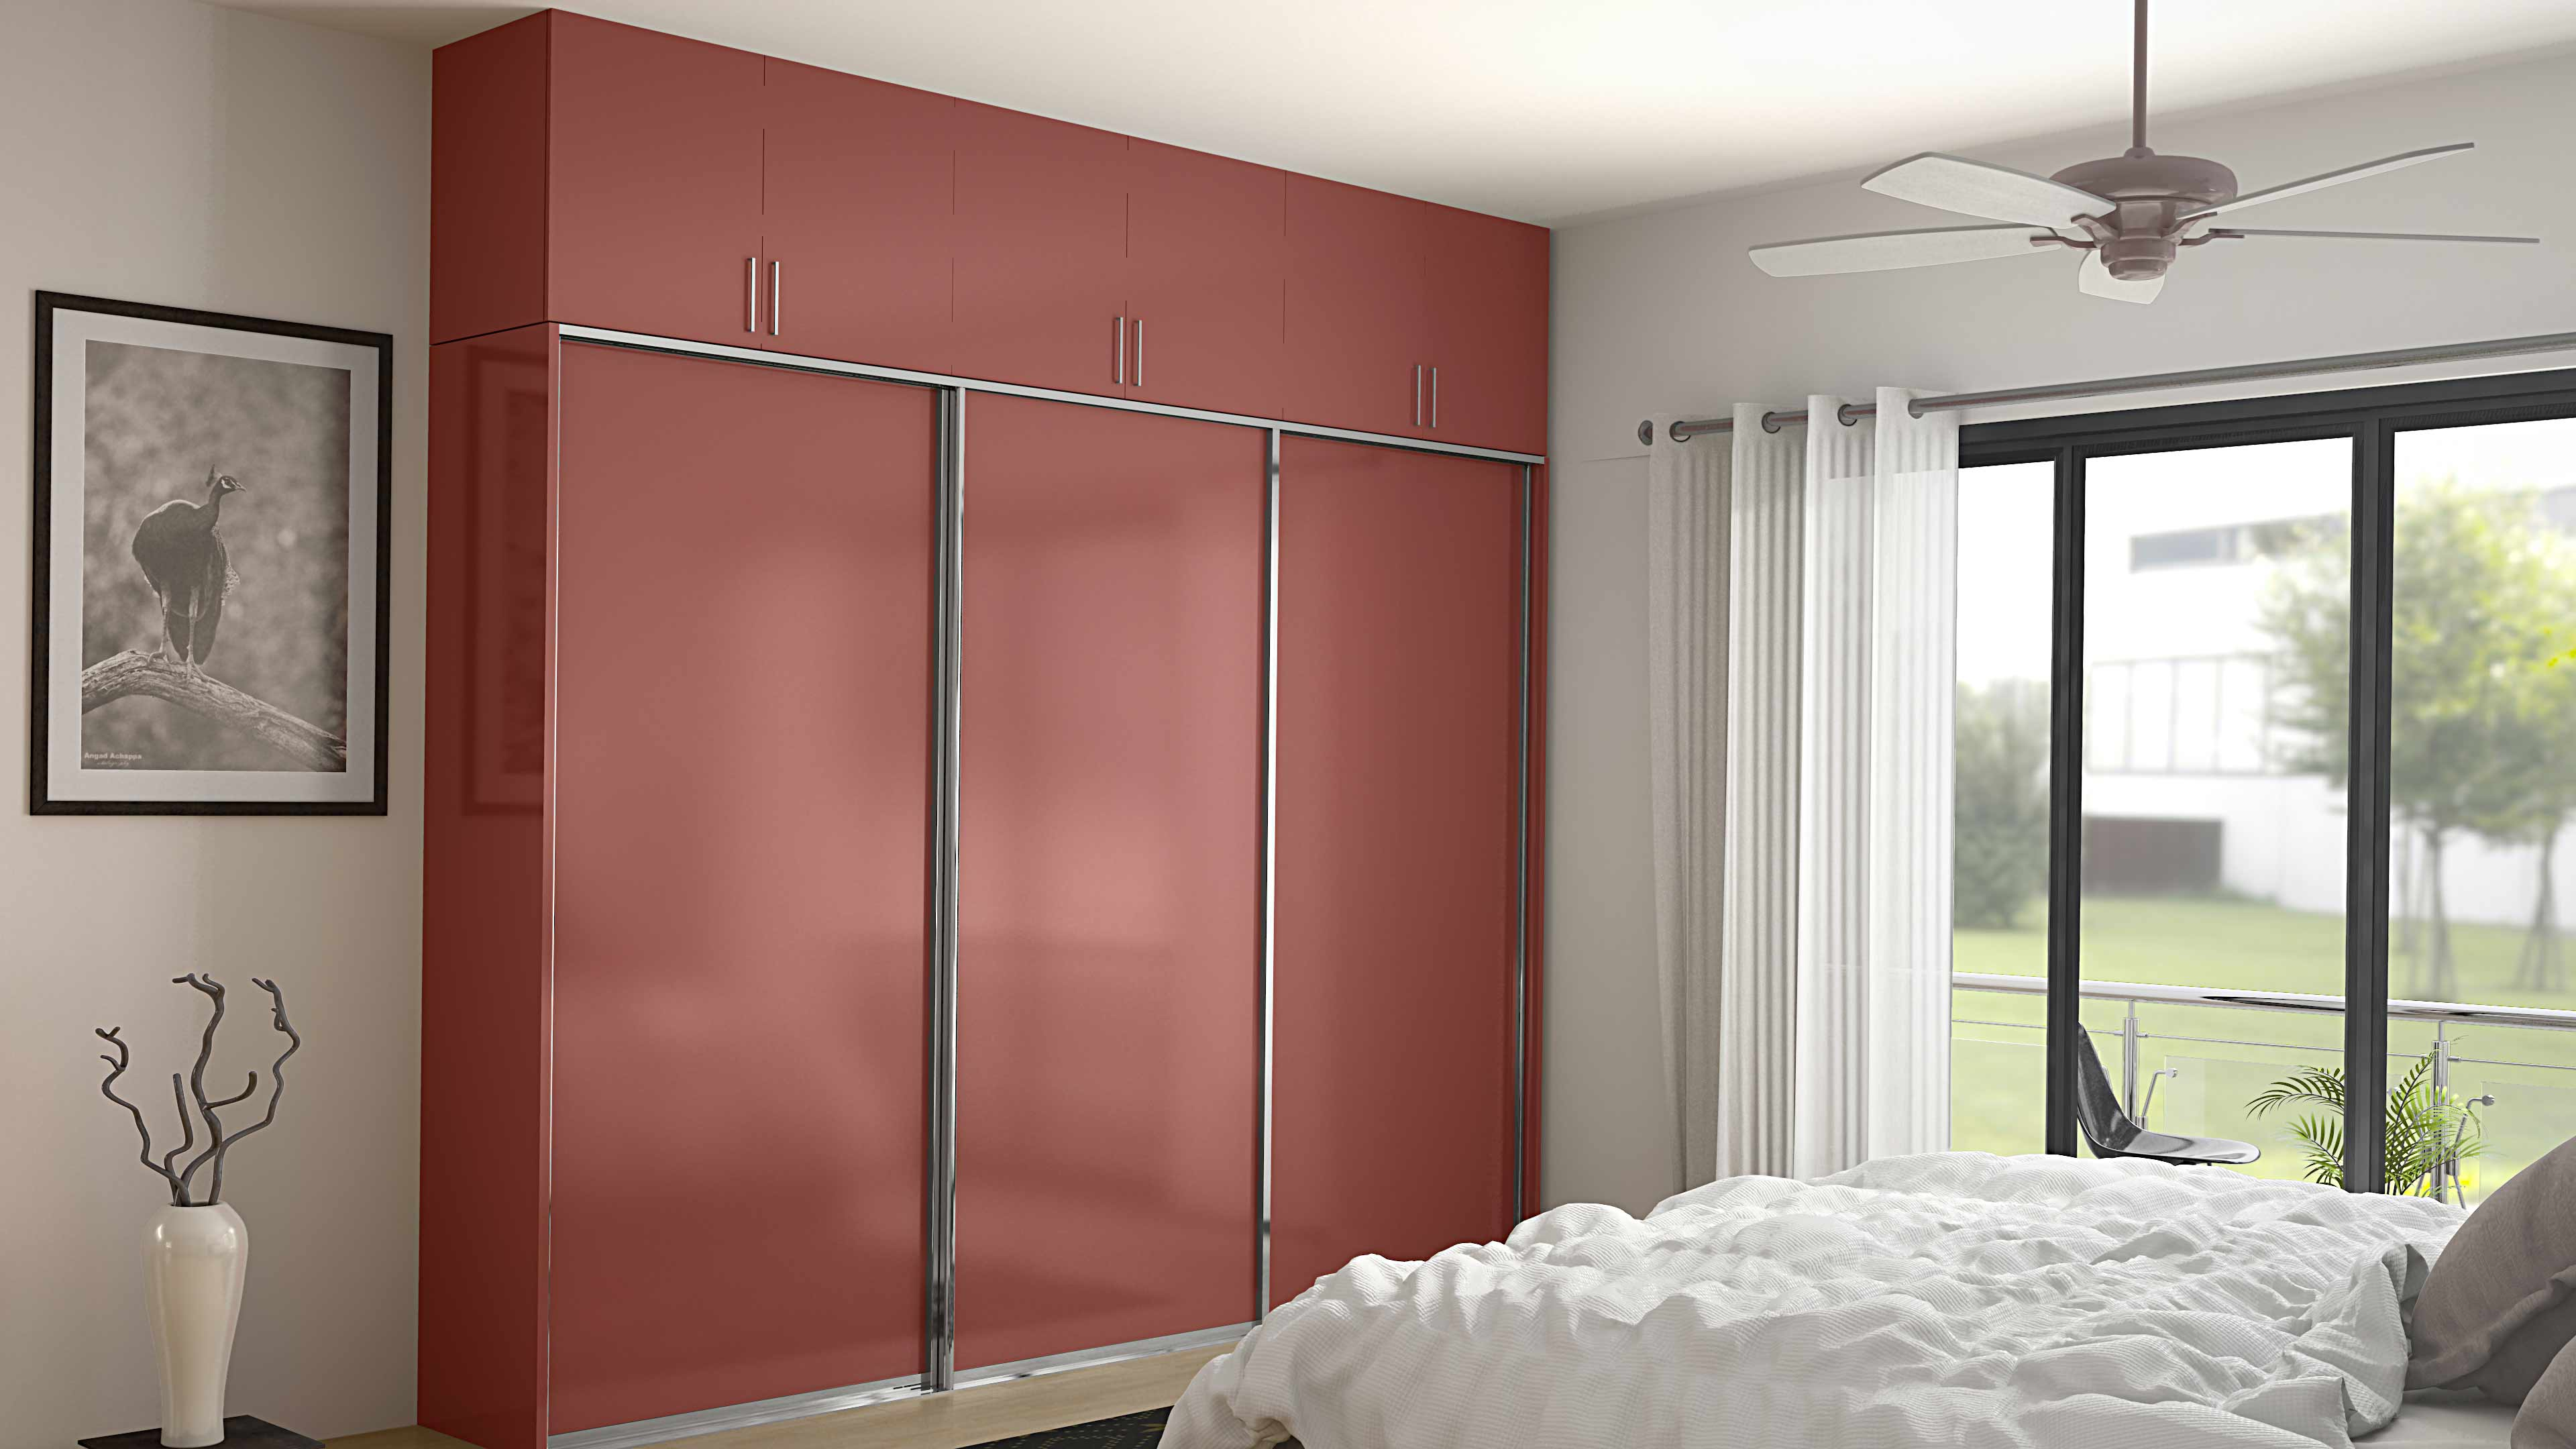 Wardrobe Manufacturing Company in Gurgaon | Modular Kitchen